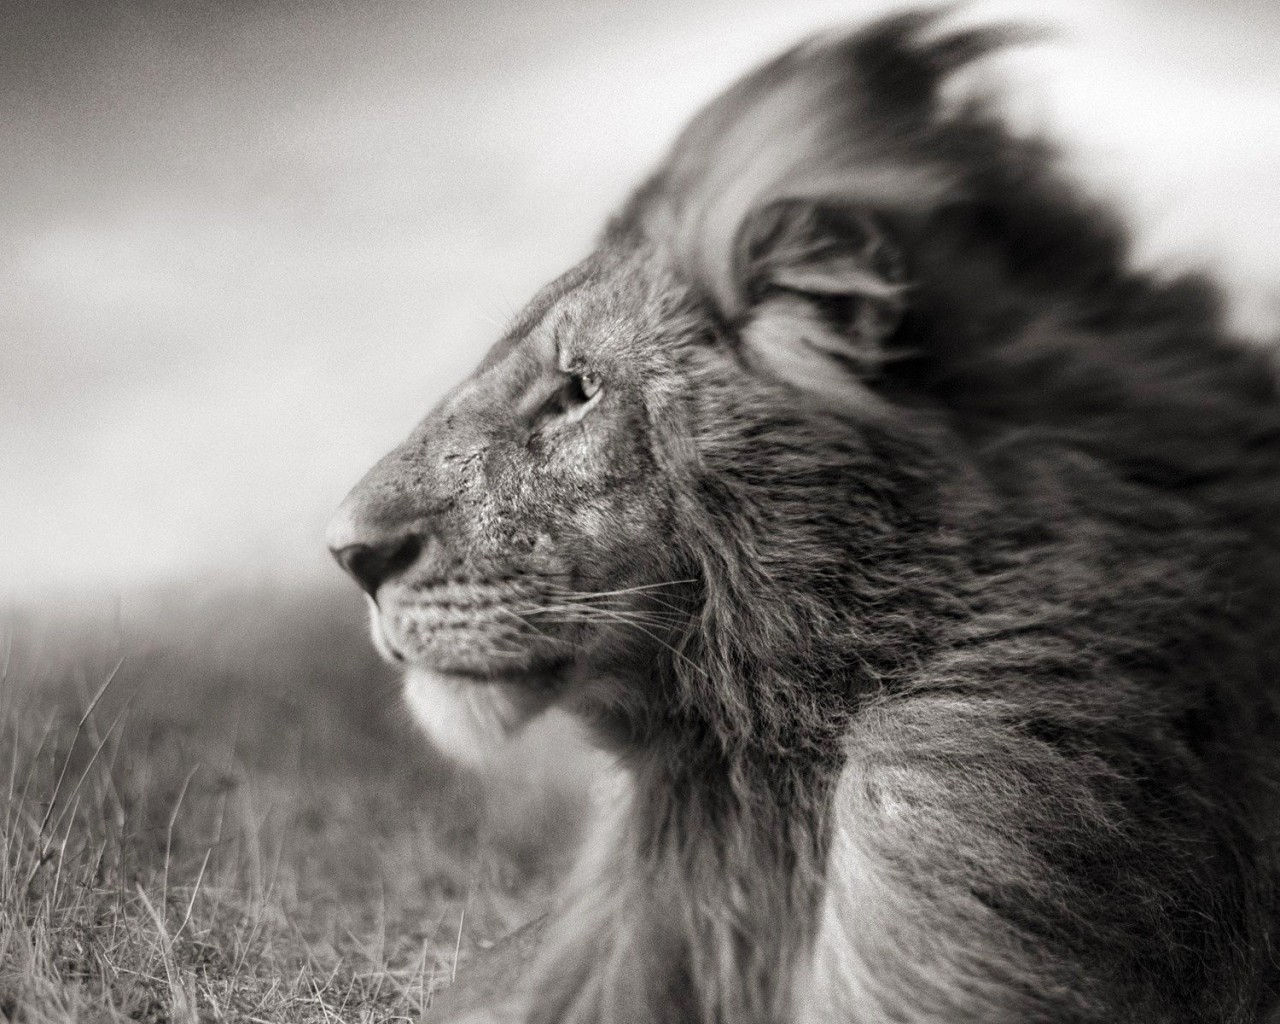 Portrait Of A Lion In Black And White Wallpaper for Desktop 1280x1024